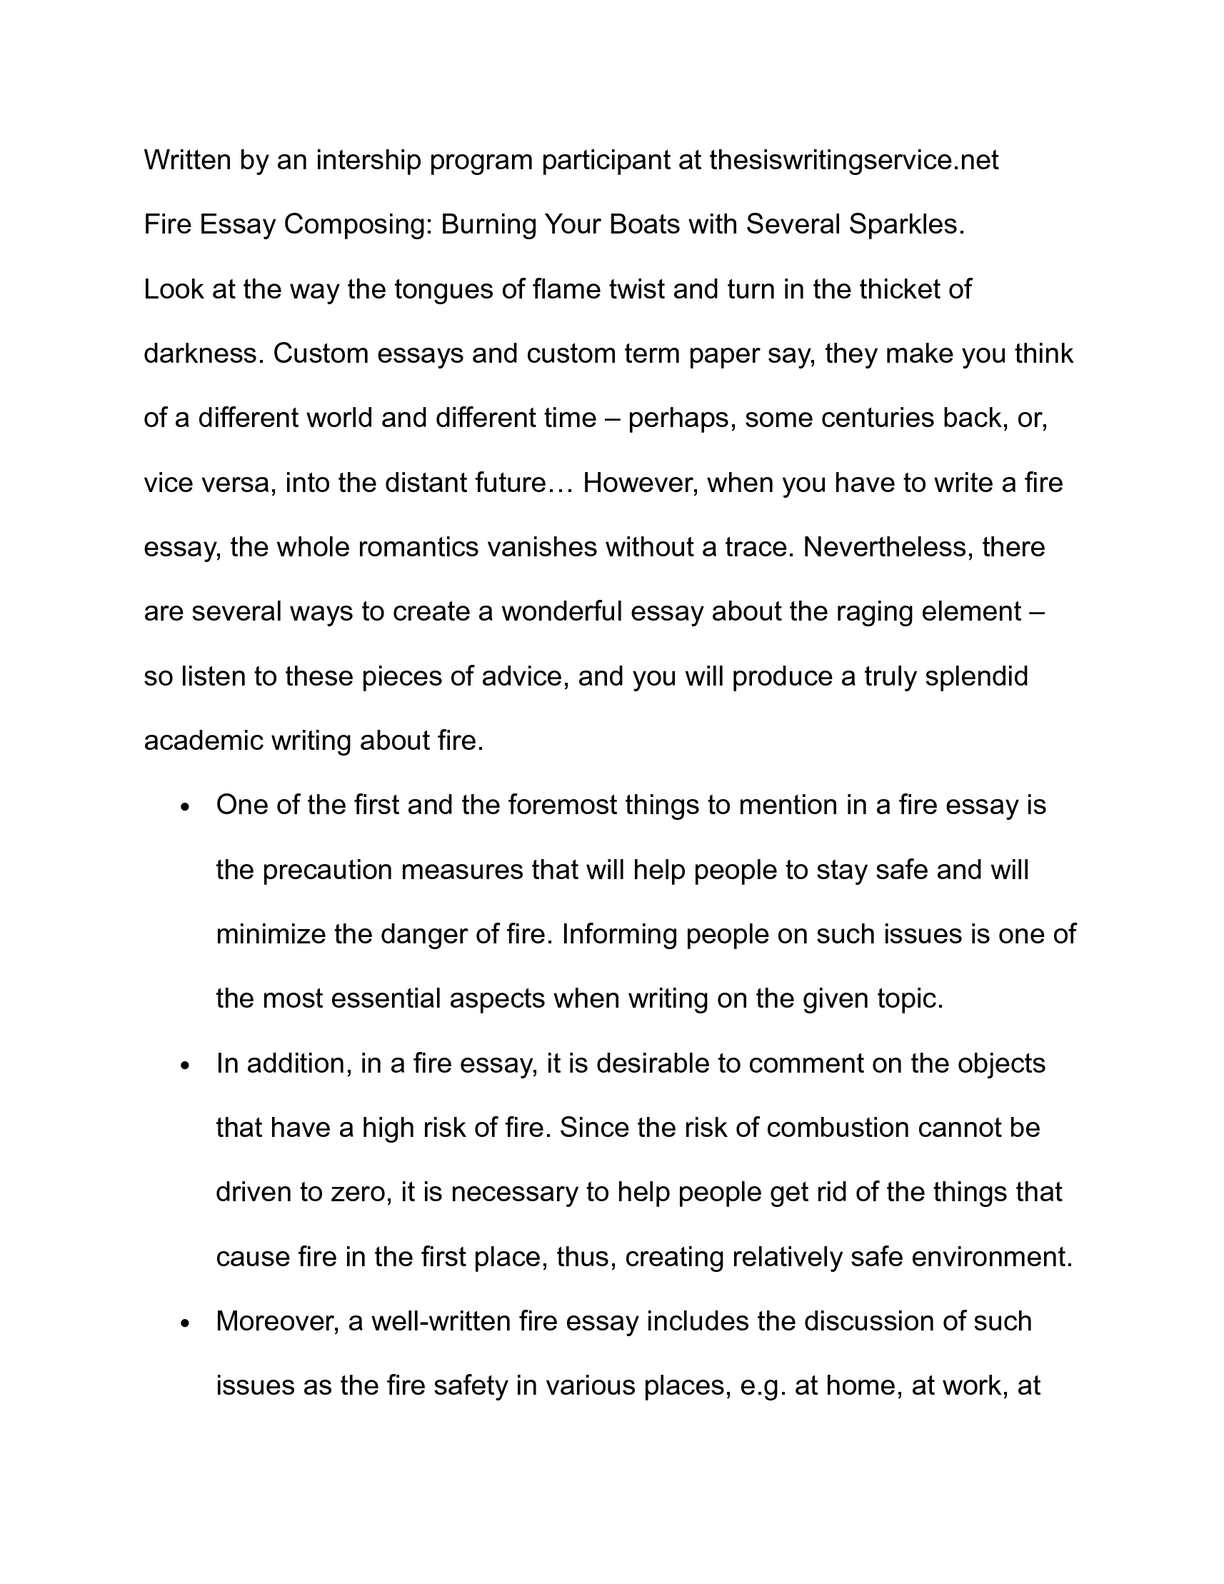 Essay Proposal Template Essay On Safety At Home  Essay On Safety  High School Entrance Essays also Gender Equality Essay Paper Essay On Safety At Home  Romefontanacountryinncom Health And Fitness Essay